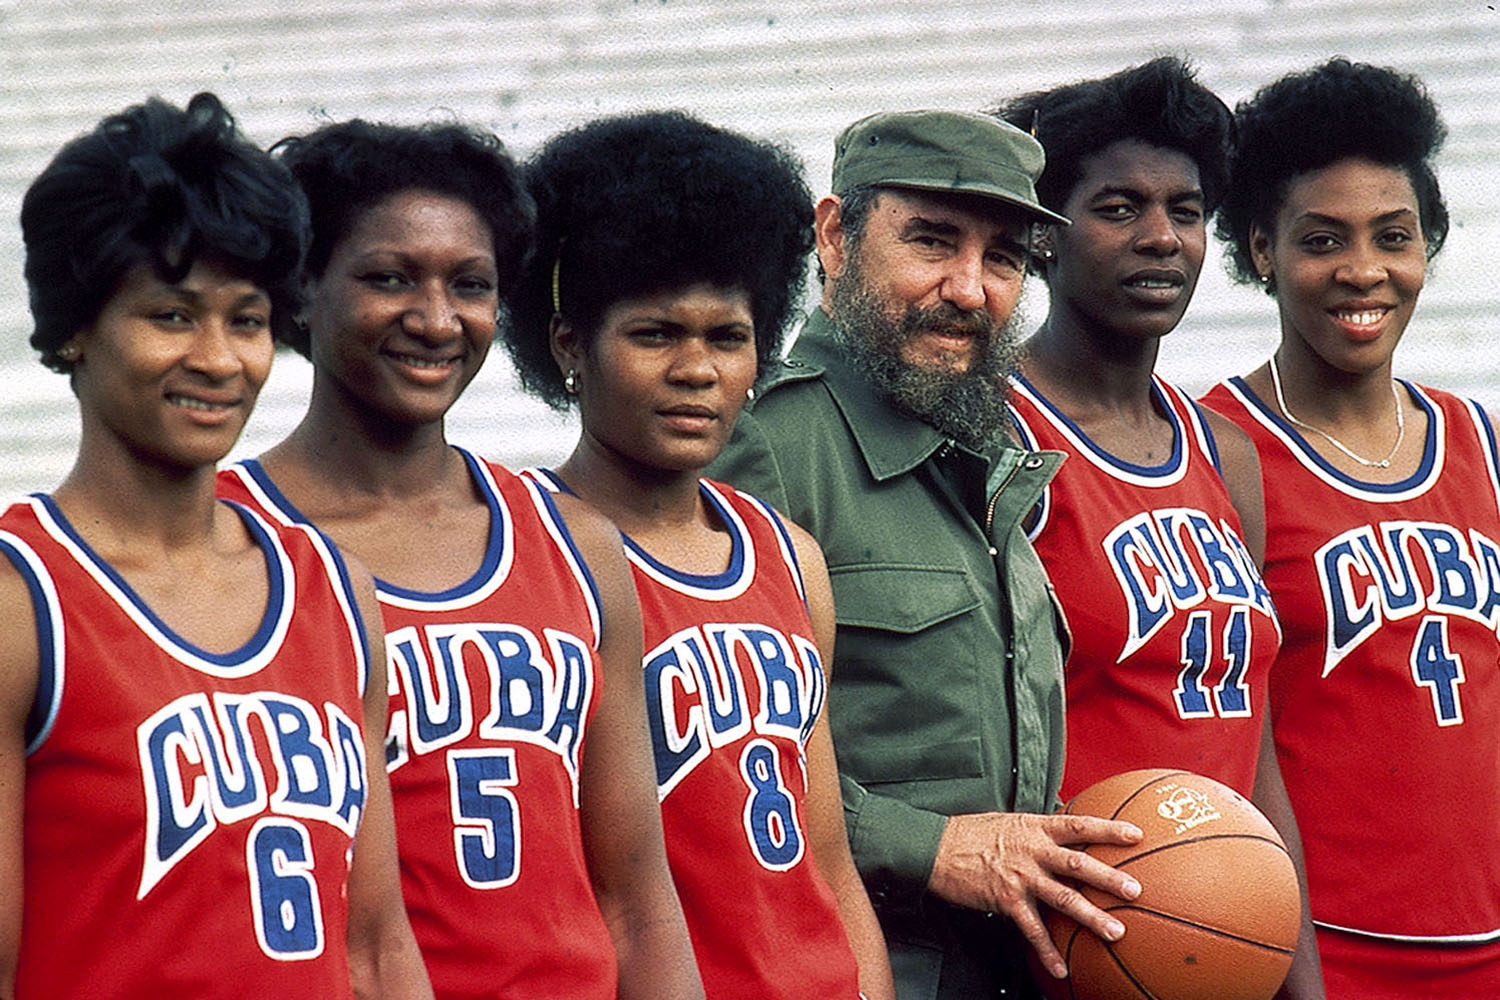 Fidel Castro poses with the Cuban women's basketball team in Havana.